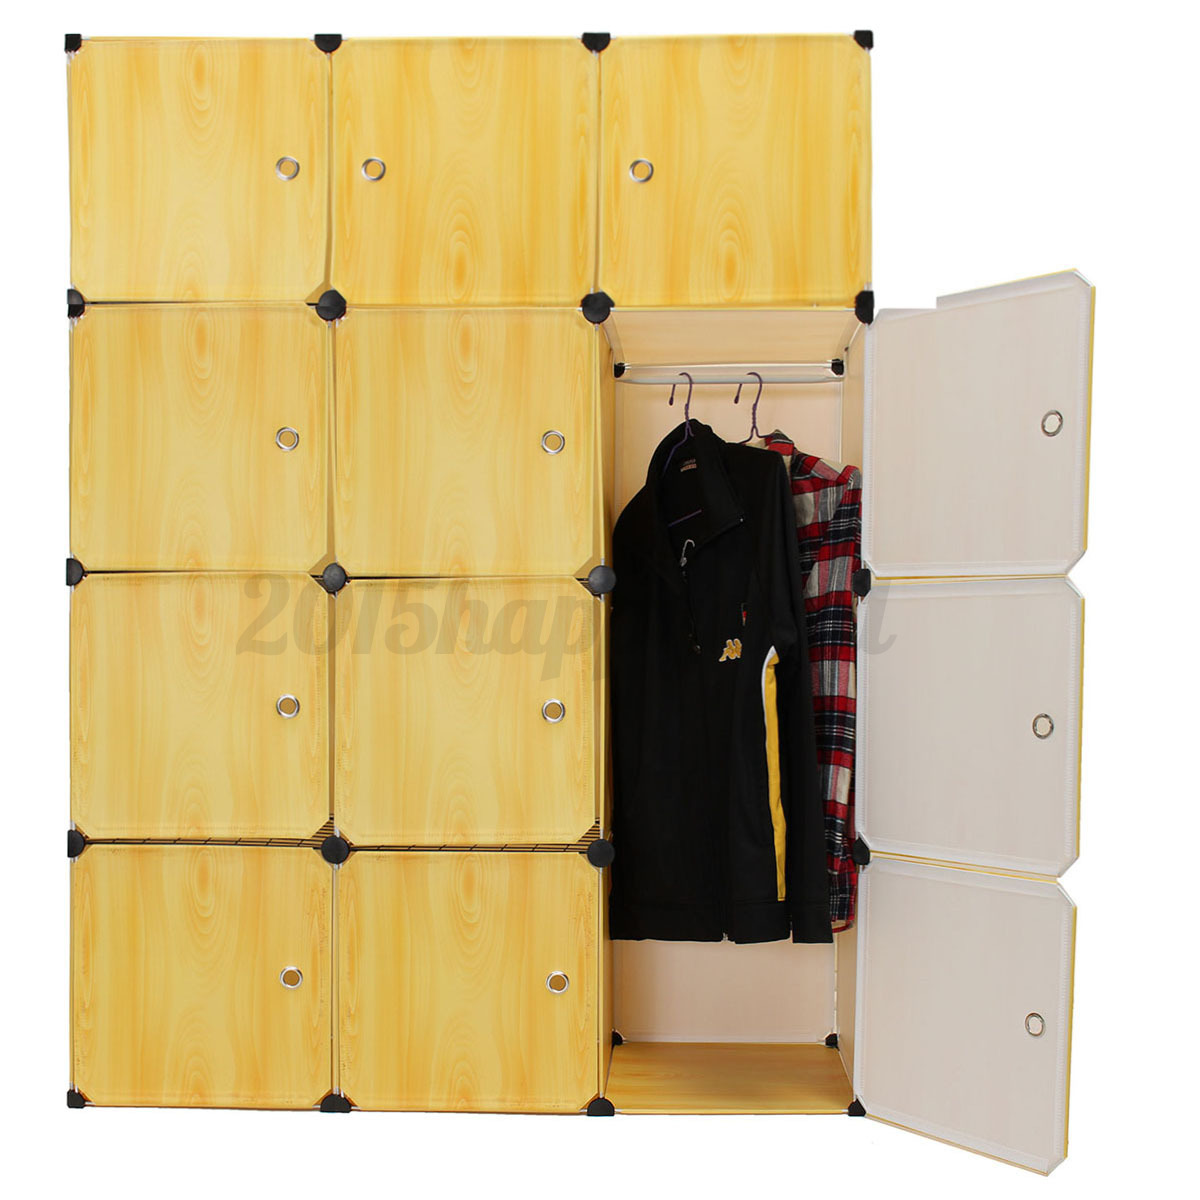 12 cube portable clothes closet organizer wardrobe storage hanging rail shelves ebay. Black Bedroom Furniture Sets. Home Design Ideas